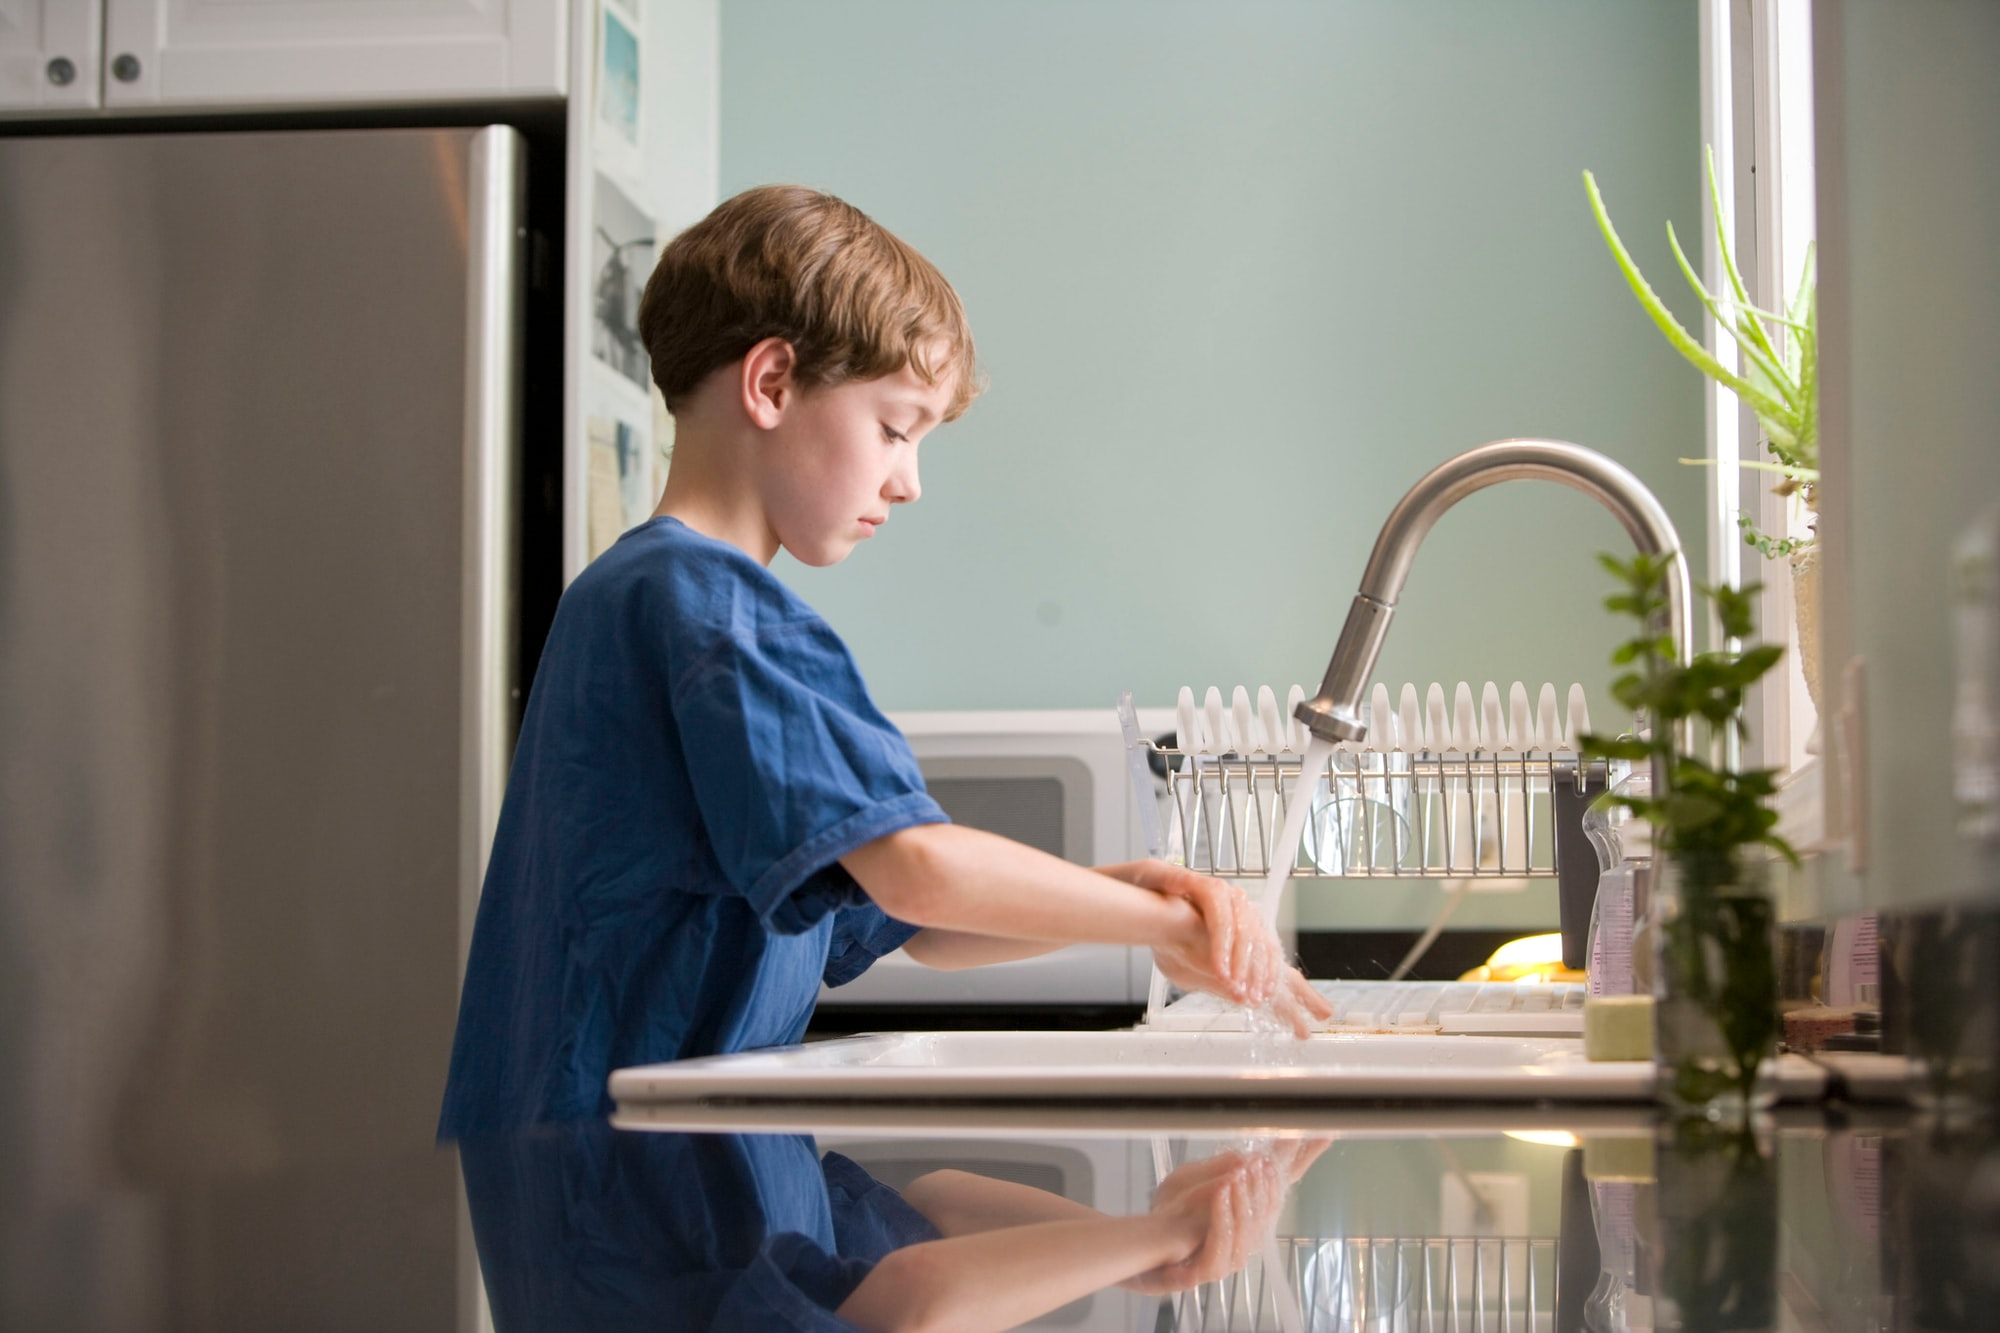 This young boy was shown in the process of properly washing his hands at his kitchen sink, briskly rubbing his soapy hands together under fresh running tap water, in order to remove germs, and contaminants, thereby, reducing the spread of pathogens, and his ingestion of environmental chemicals, or toxins. Children are taught to recite the Happy Birthday song, during hand washing, allotting enough time to completely clean their hands.